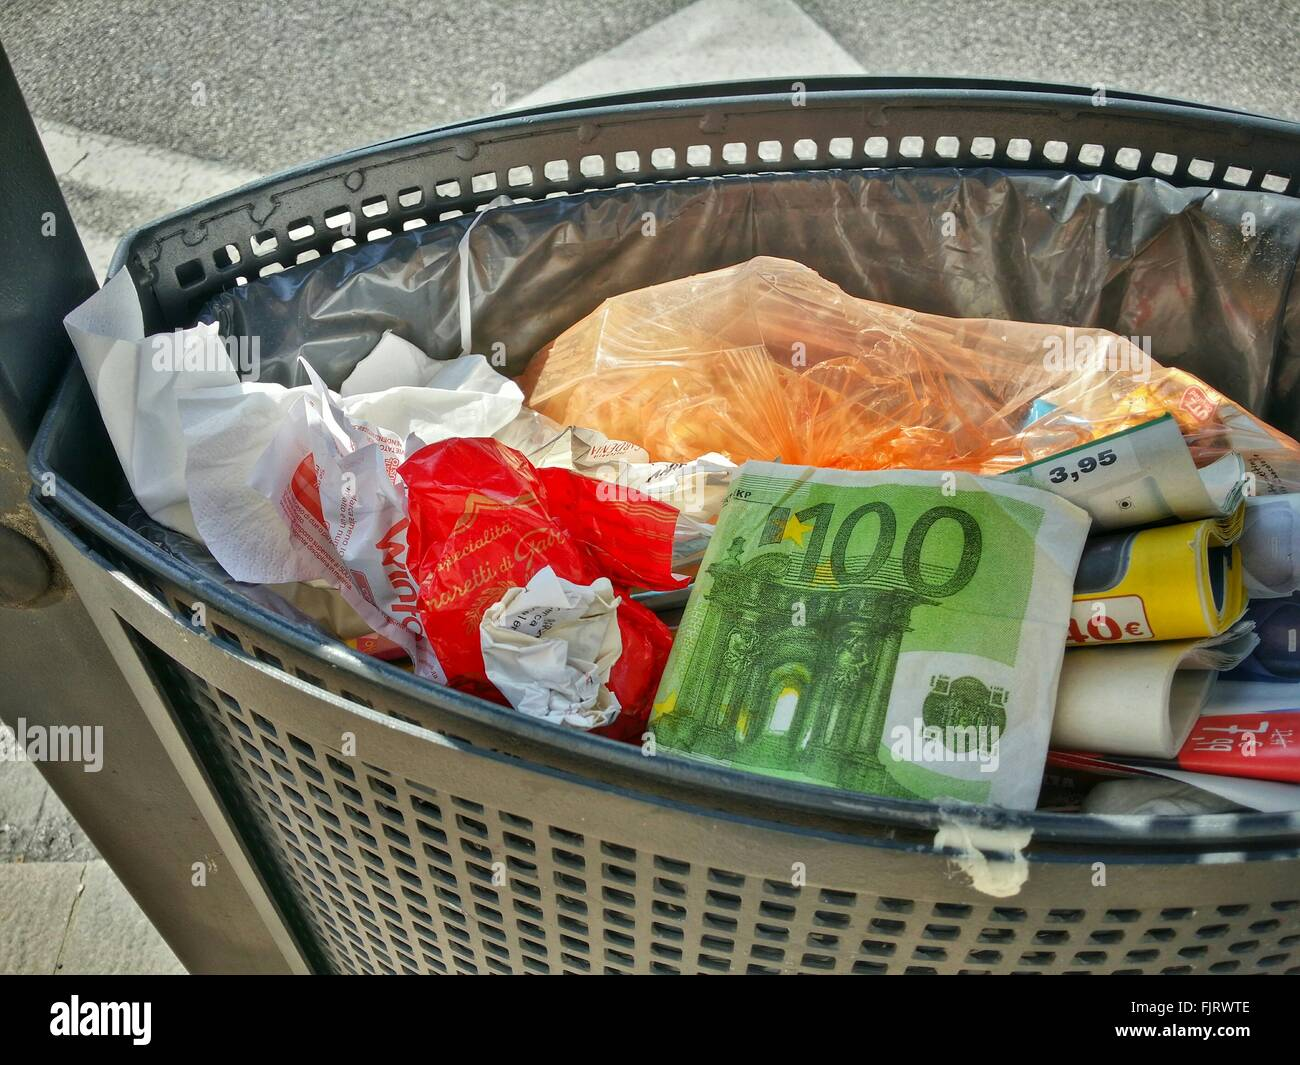 Artificial Currency In Wastepaper Basket - Stock Image